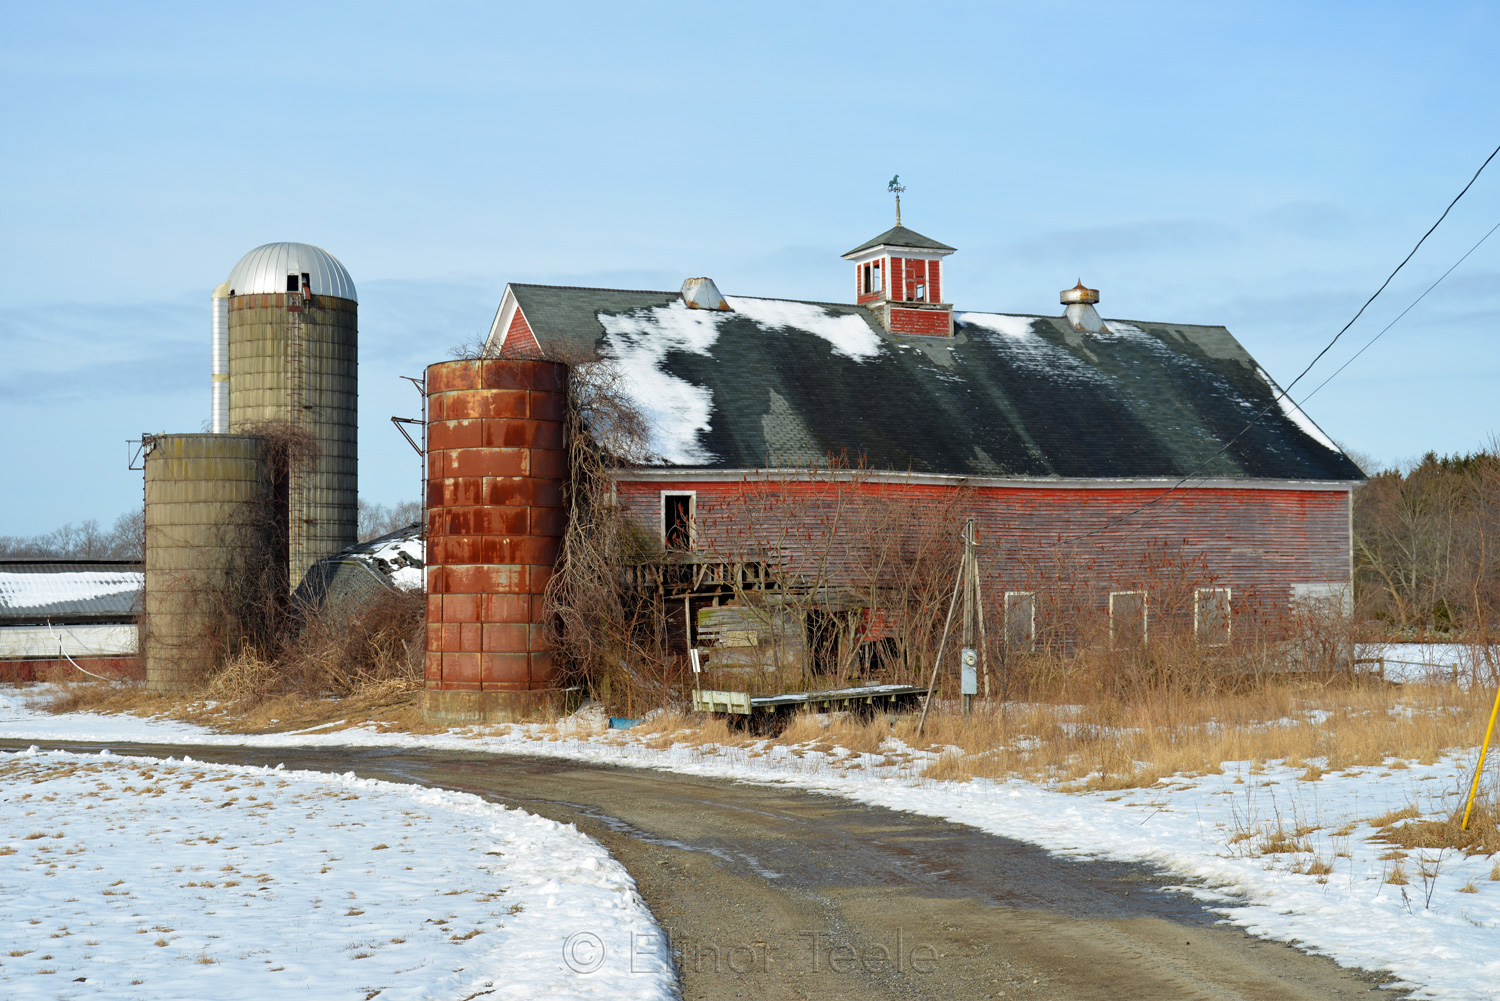 Sunshine Dairy Farm Close-Up in Melting Snows